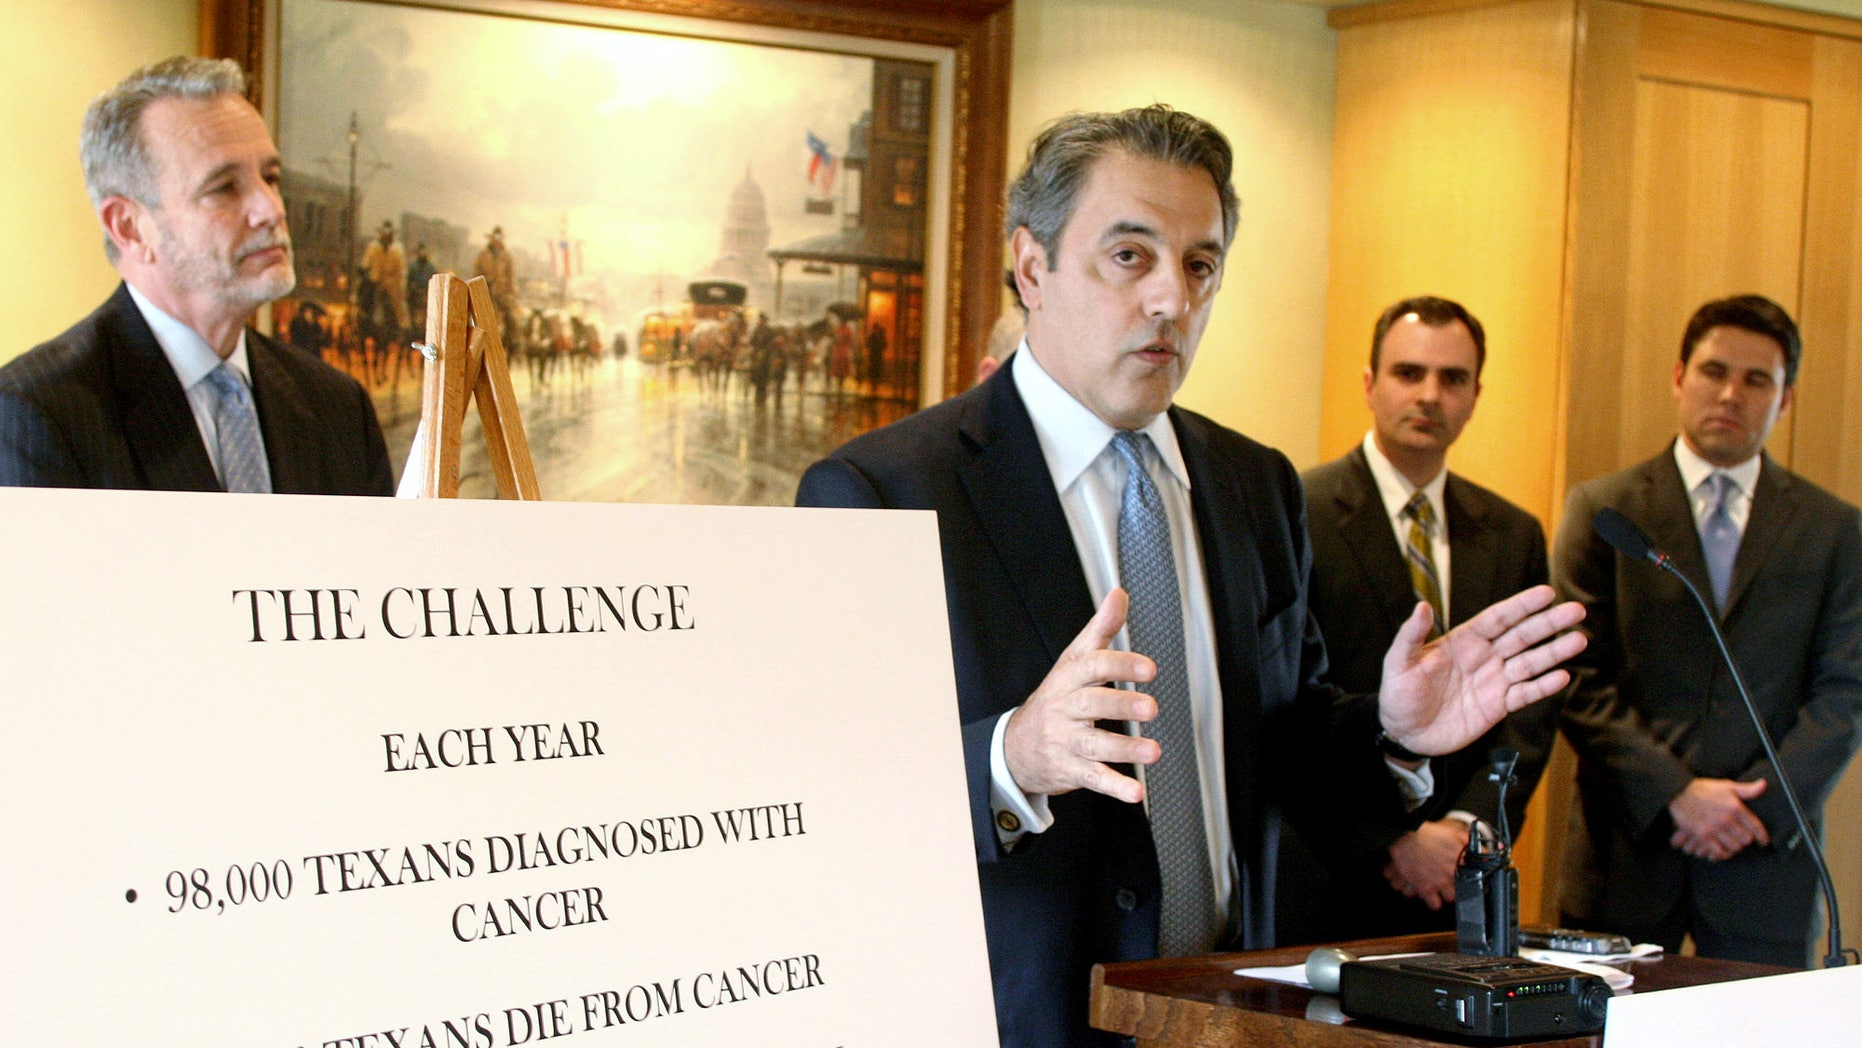 In this Jan. 20, 2009, file photo, the Cancer Prevention and Research Institute of Texas chairman James Mansour, center, announces the release of $60 million in grants for cancer research projects in Texas during a news conference in Austin, Texas. Leaders at the Cancer Prevention and Research Institute of Texas say they hope to begin soliciting new applications for research grants by October 2013 after a year of turmoil and an ongoing criminal investigation into questionable grant awards.